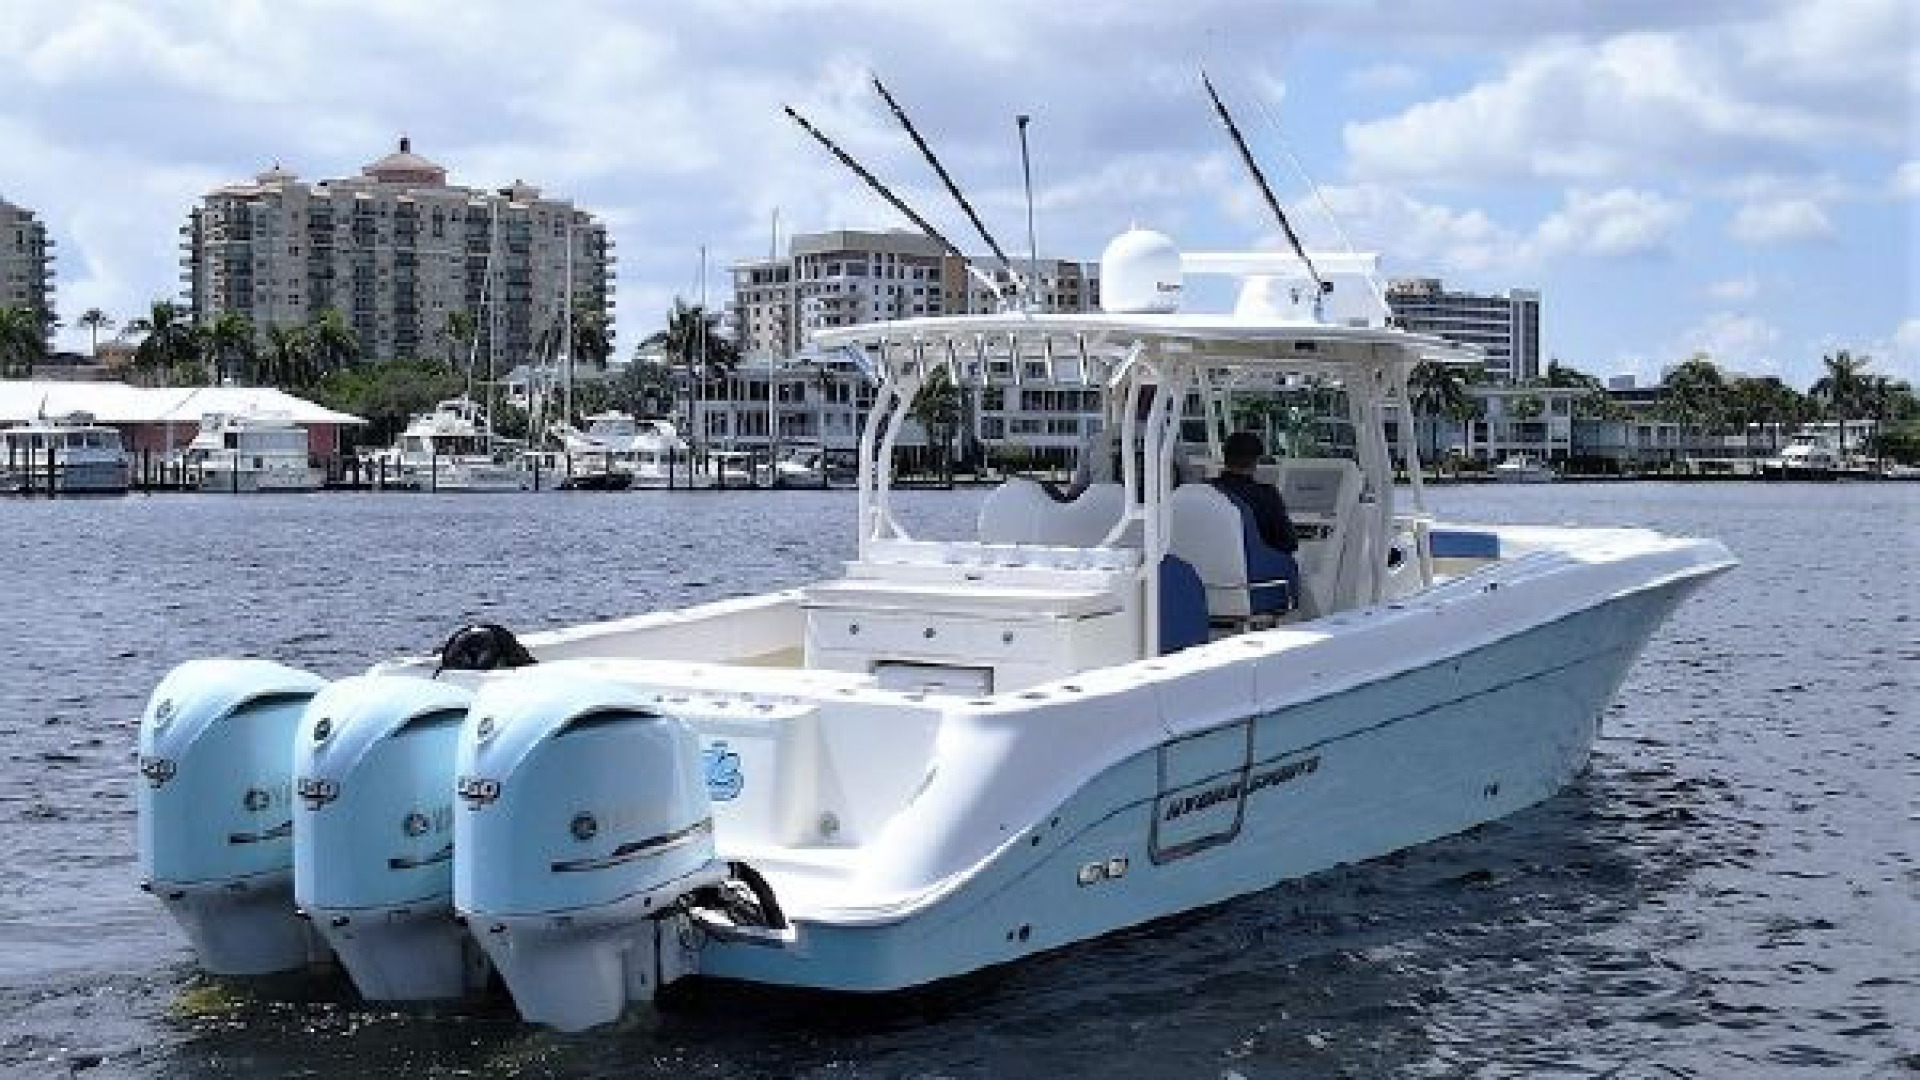 Hydra-Sports-42 Center Console 4200 SF 2011 -Fort Lauderdale-Florida-United States-1564117 | Thumbnail